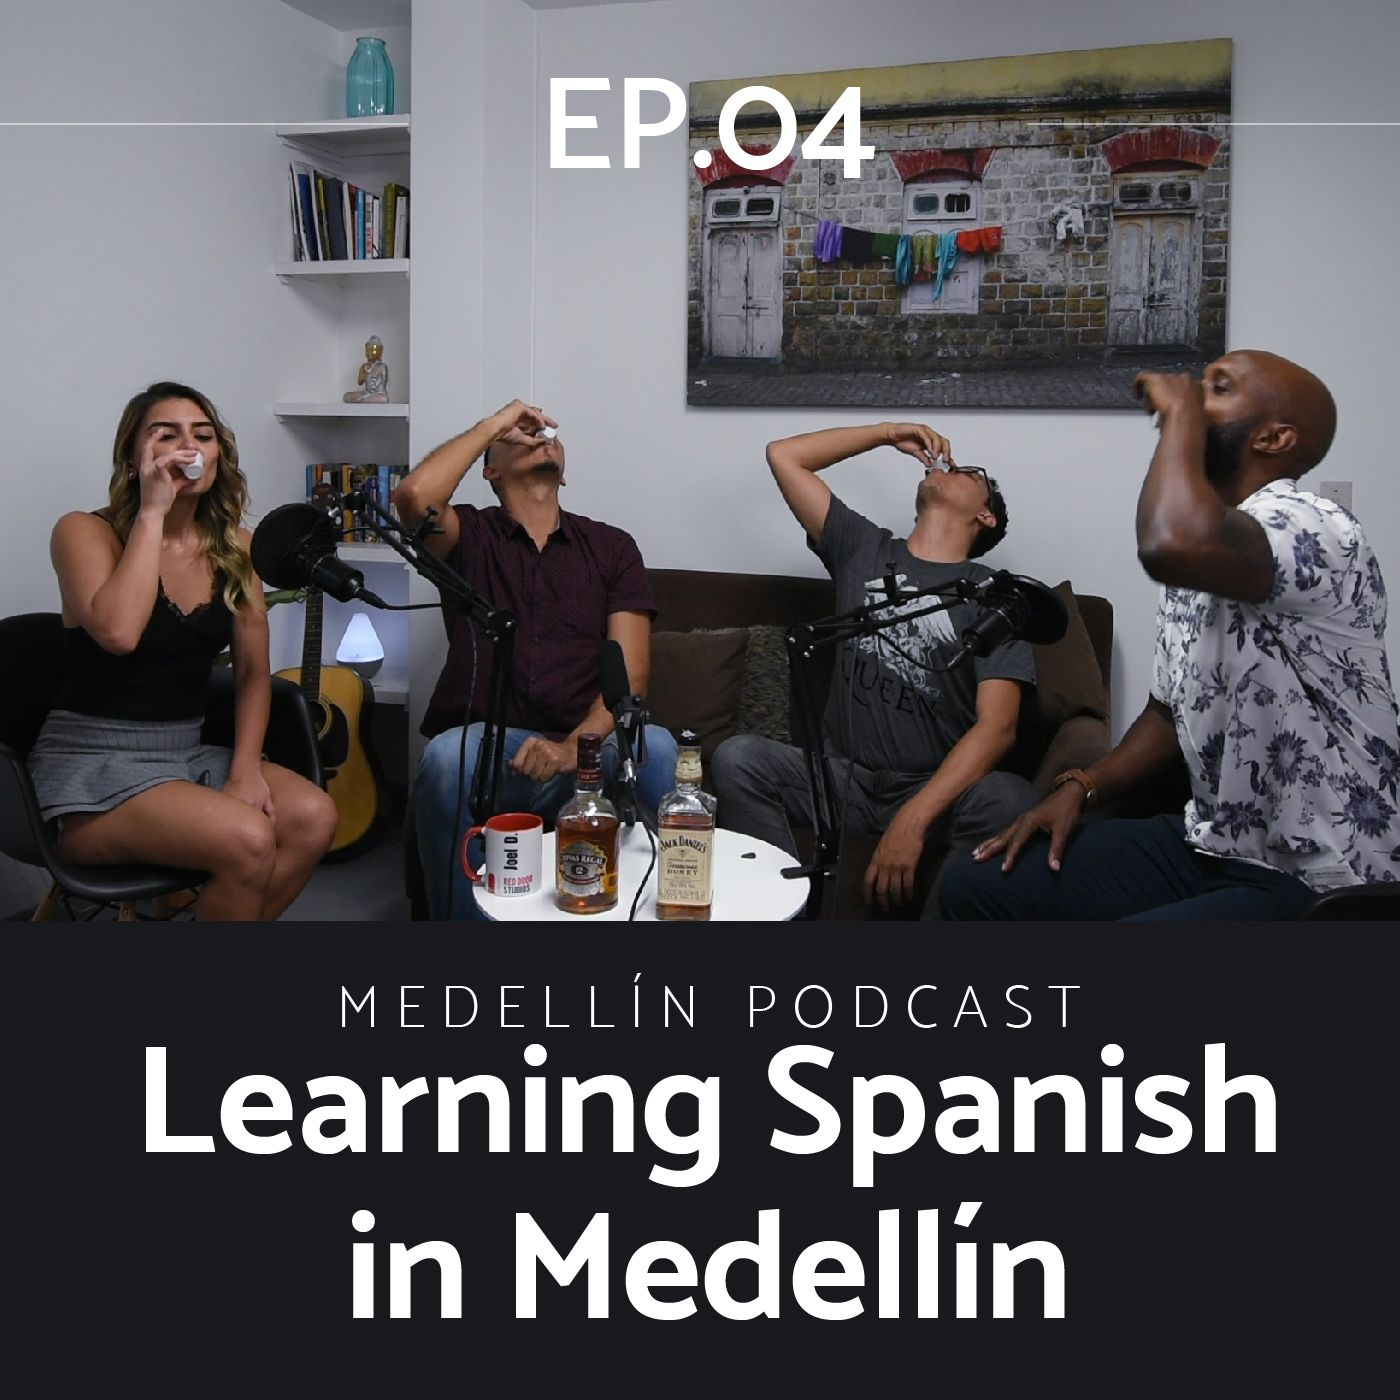 Learning spanish in Medellin - Medellin Podcast Ep. 04